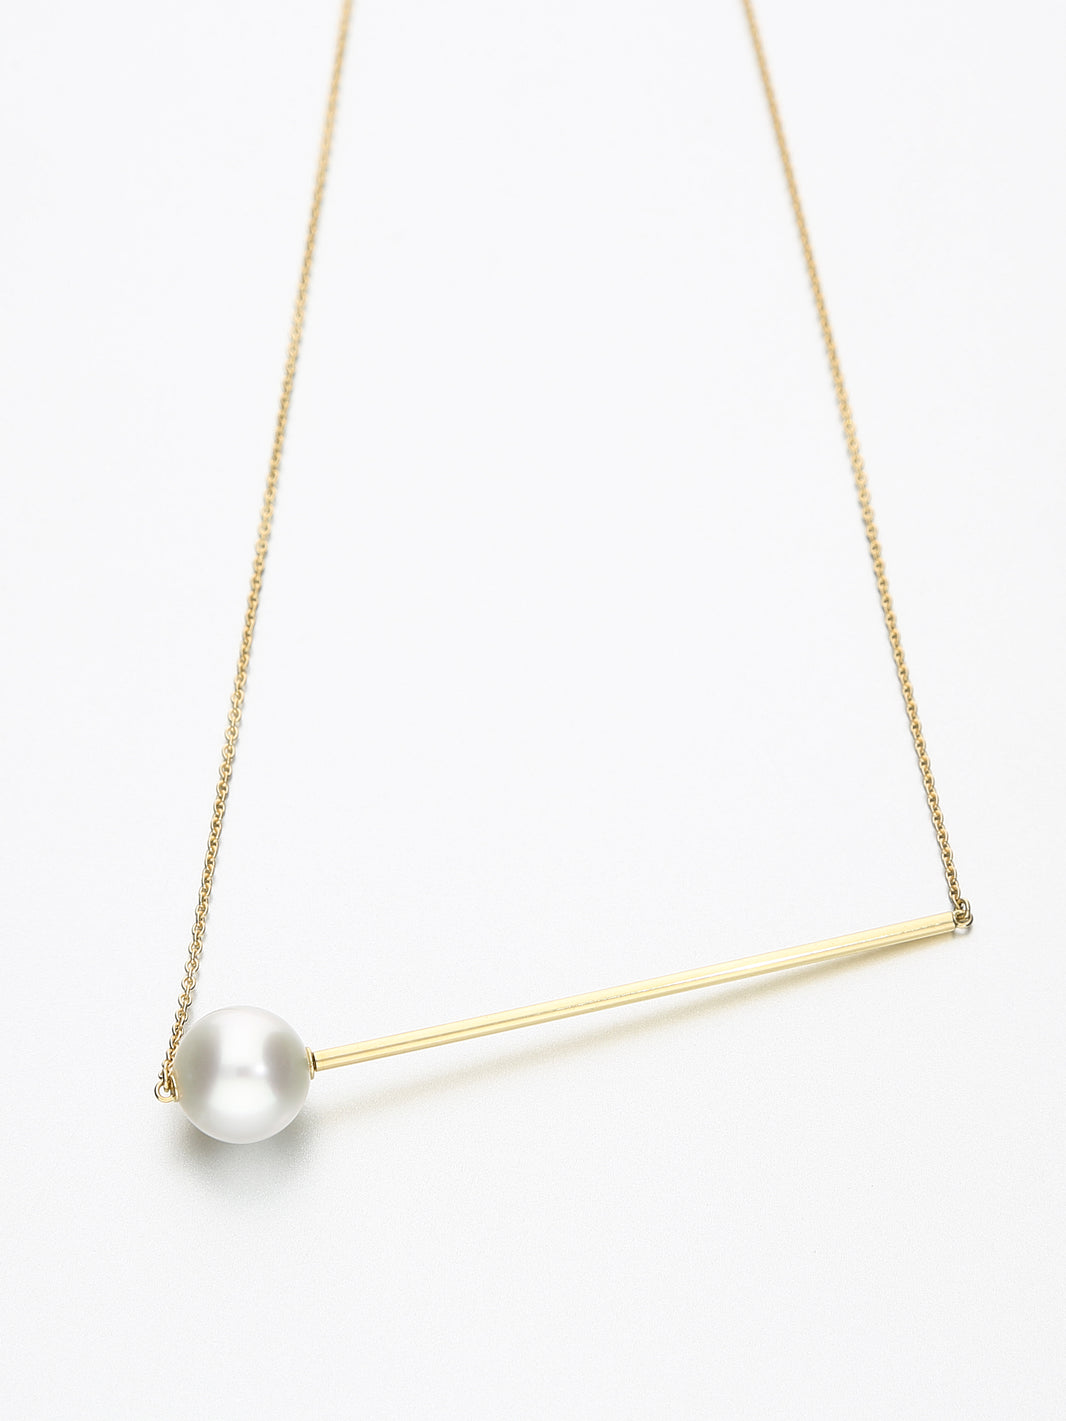 Abacus Pearl Necklace, Yellow gold with white Southsea pearl 11mm